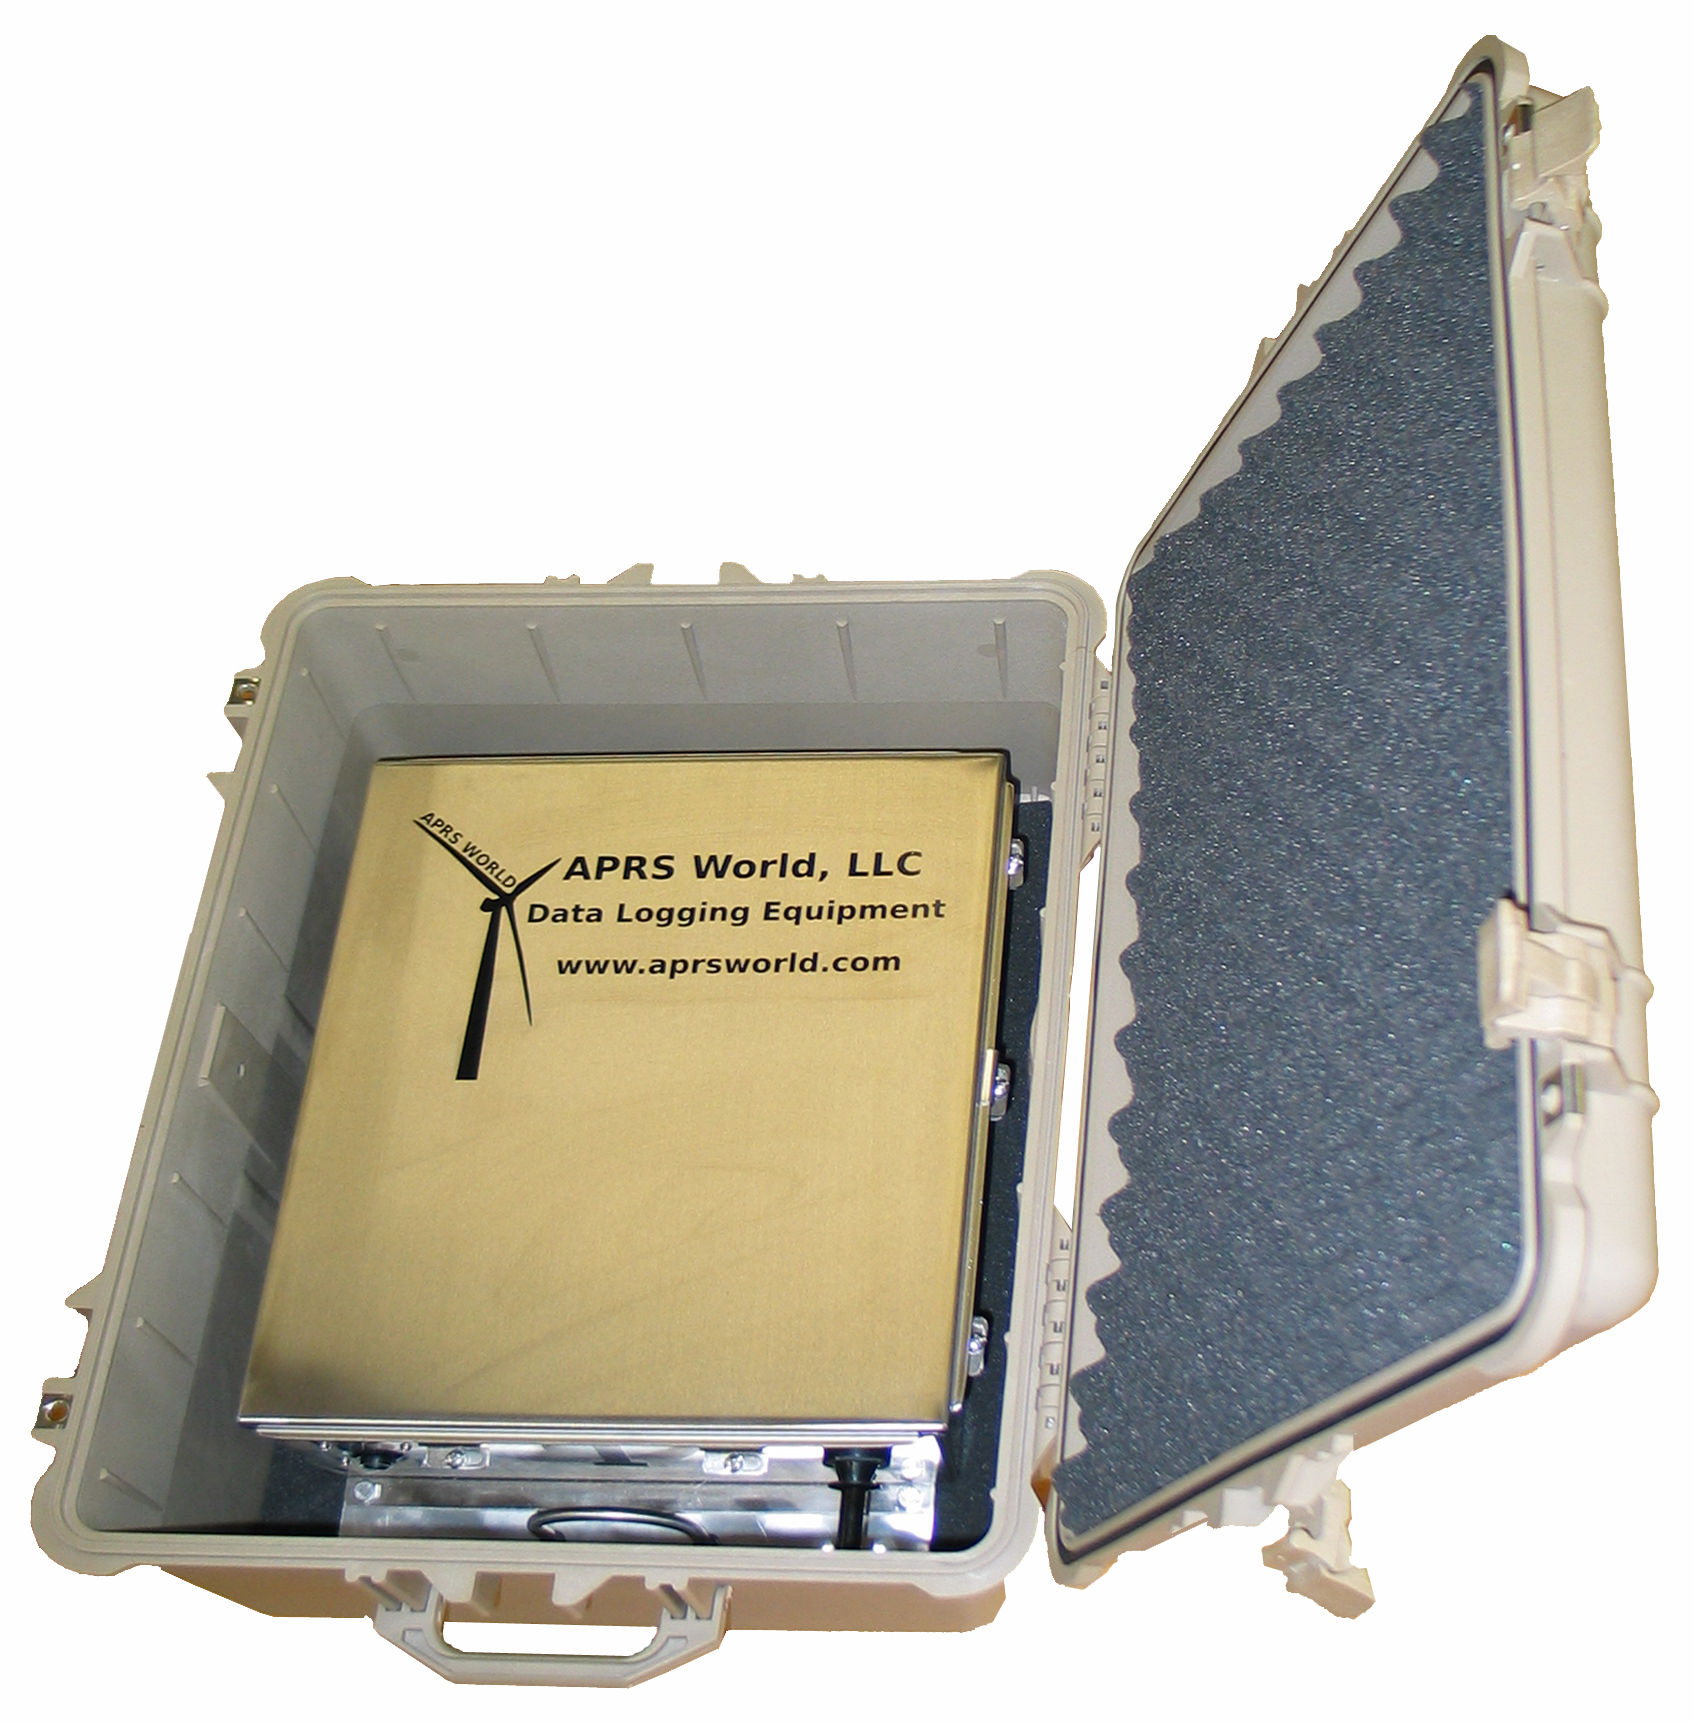 The Crane Logger in a Pelican case